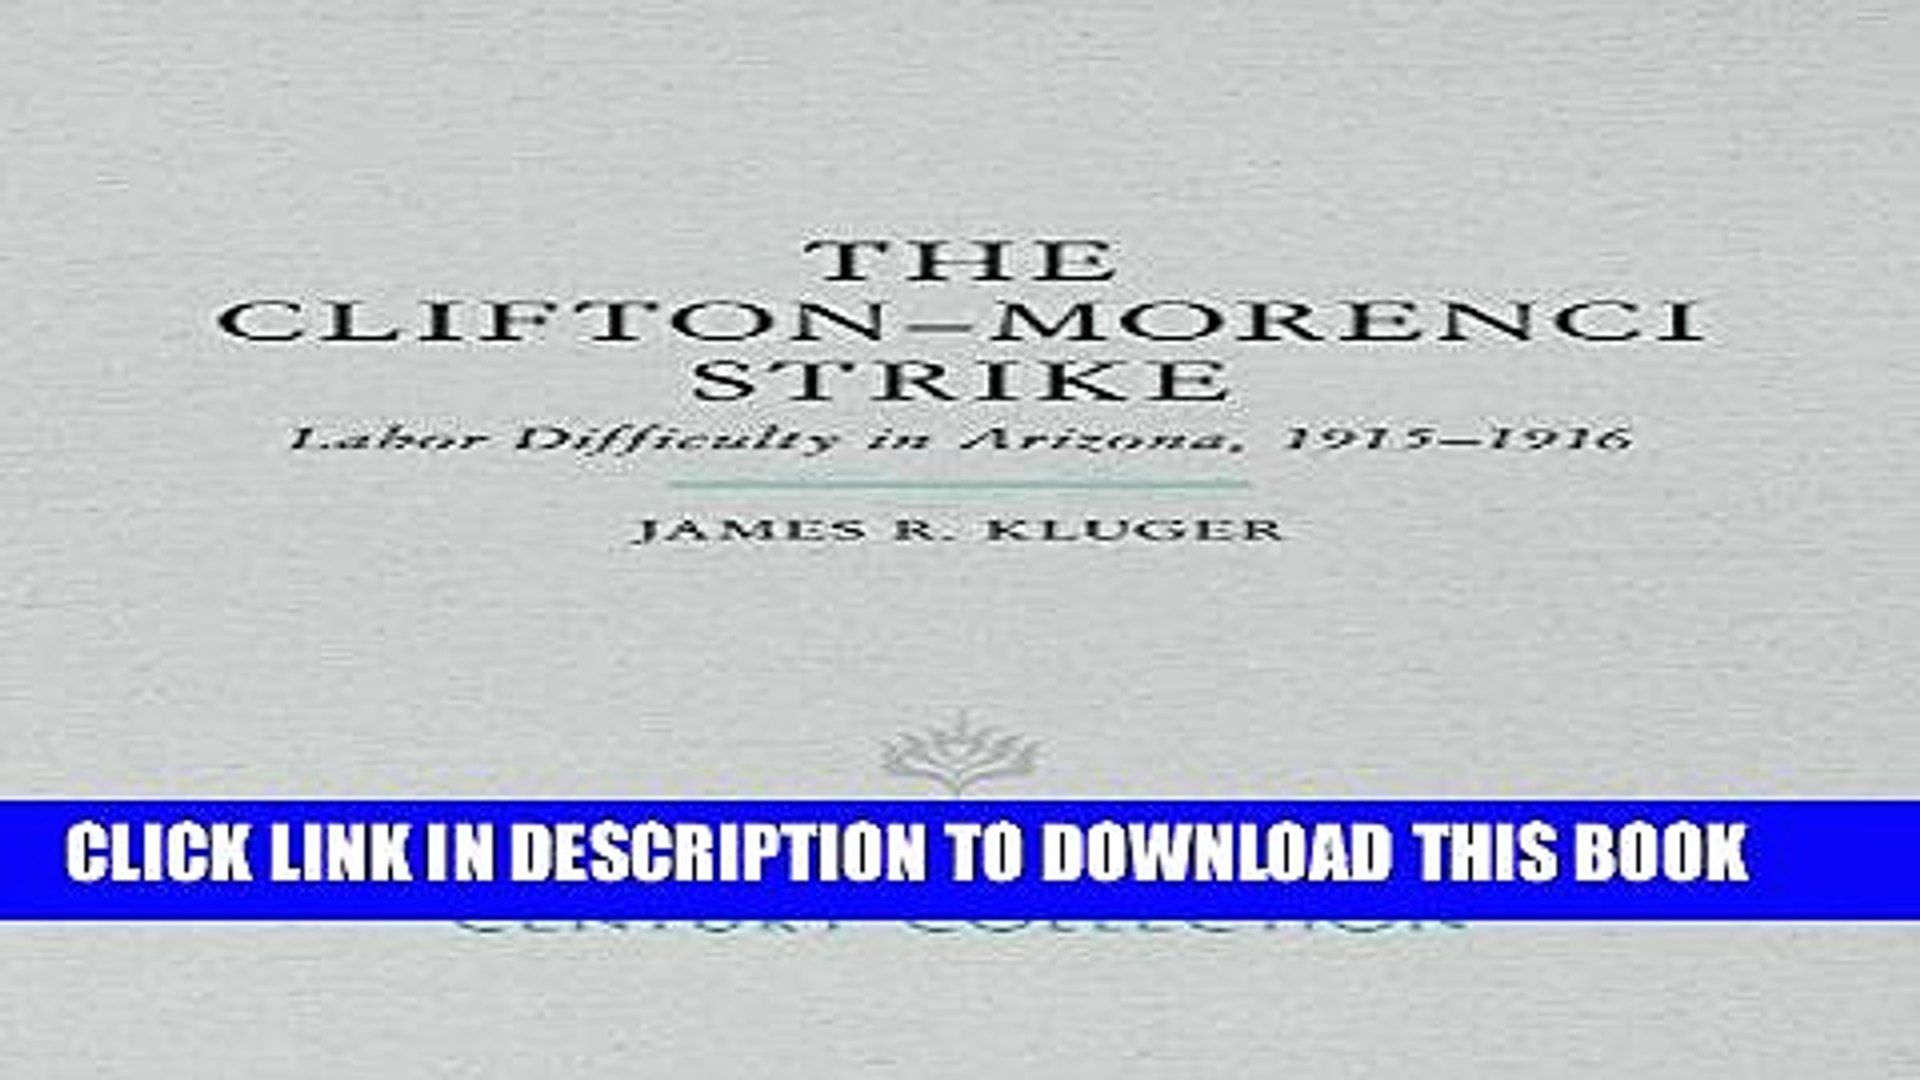 [New] PDF The Clifton-Morenci Strike: Labor Difficulty in Arizona, 1915–1916 (Century